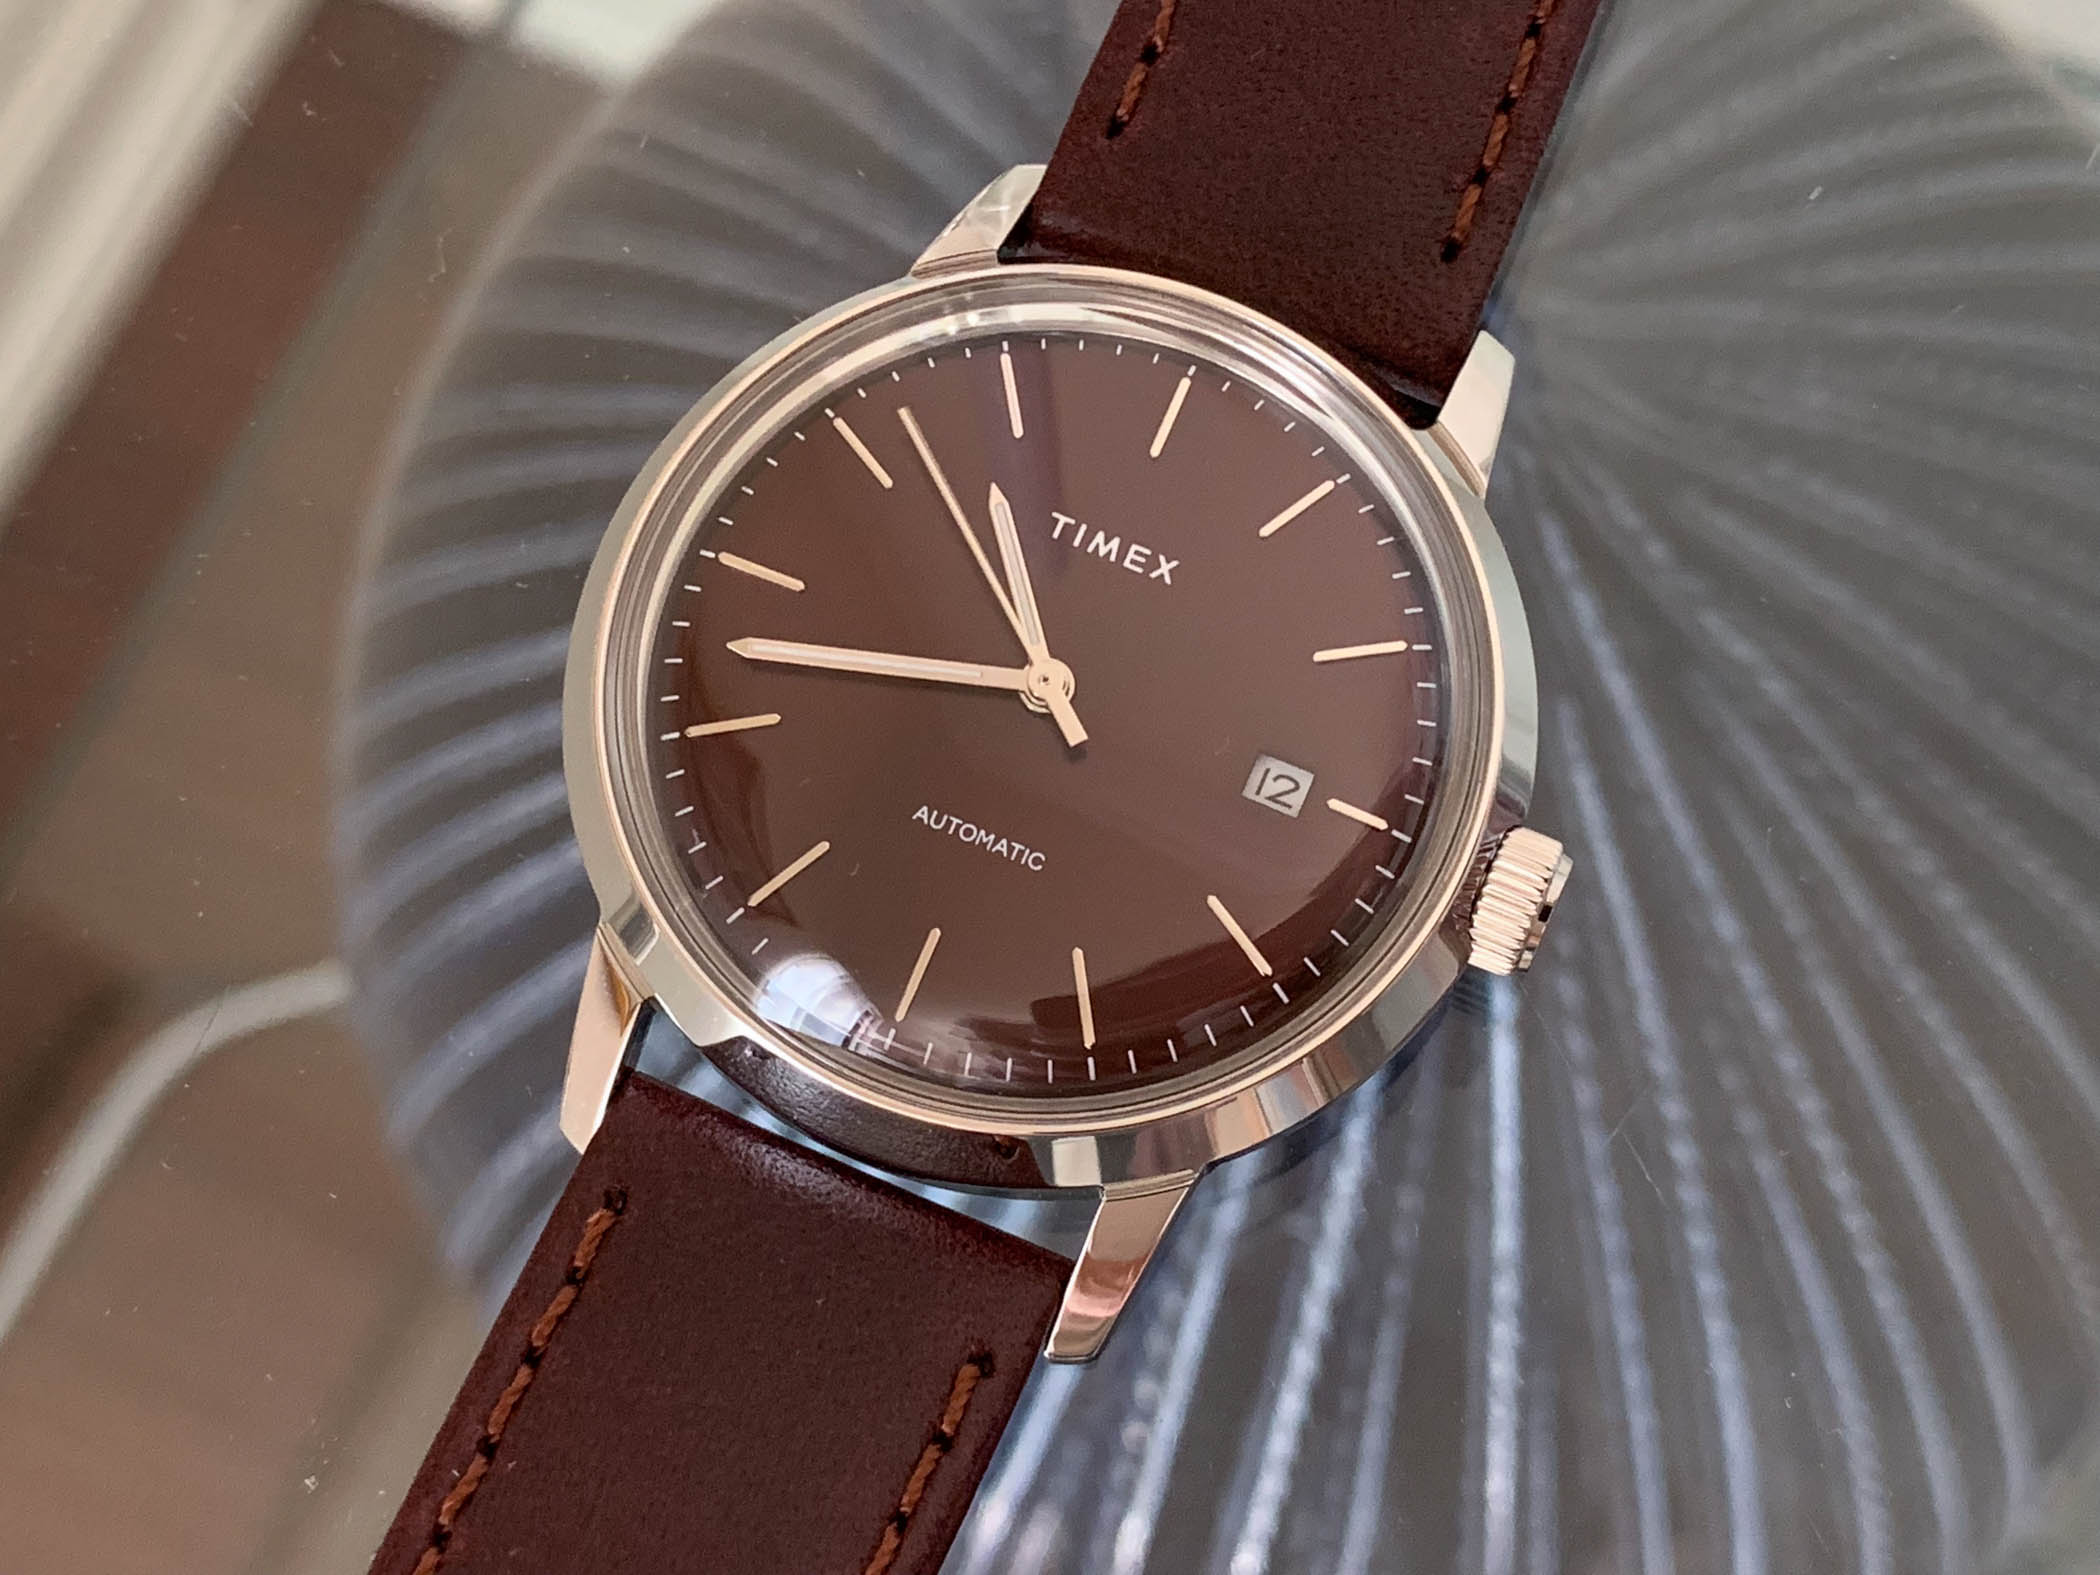 2341afb43 It's a clean, refined series that helps reinforce the fact that a small  fortune isn't required to wear a classy dress watch. Let's take a closer  look at the ...